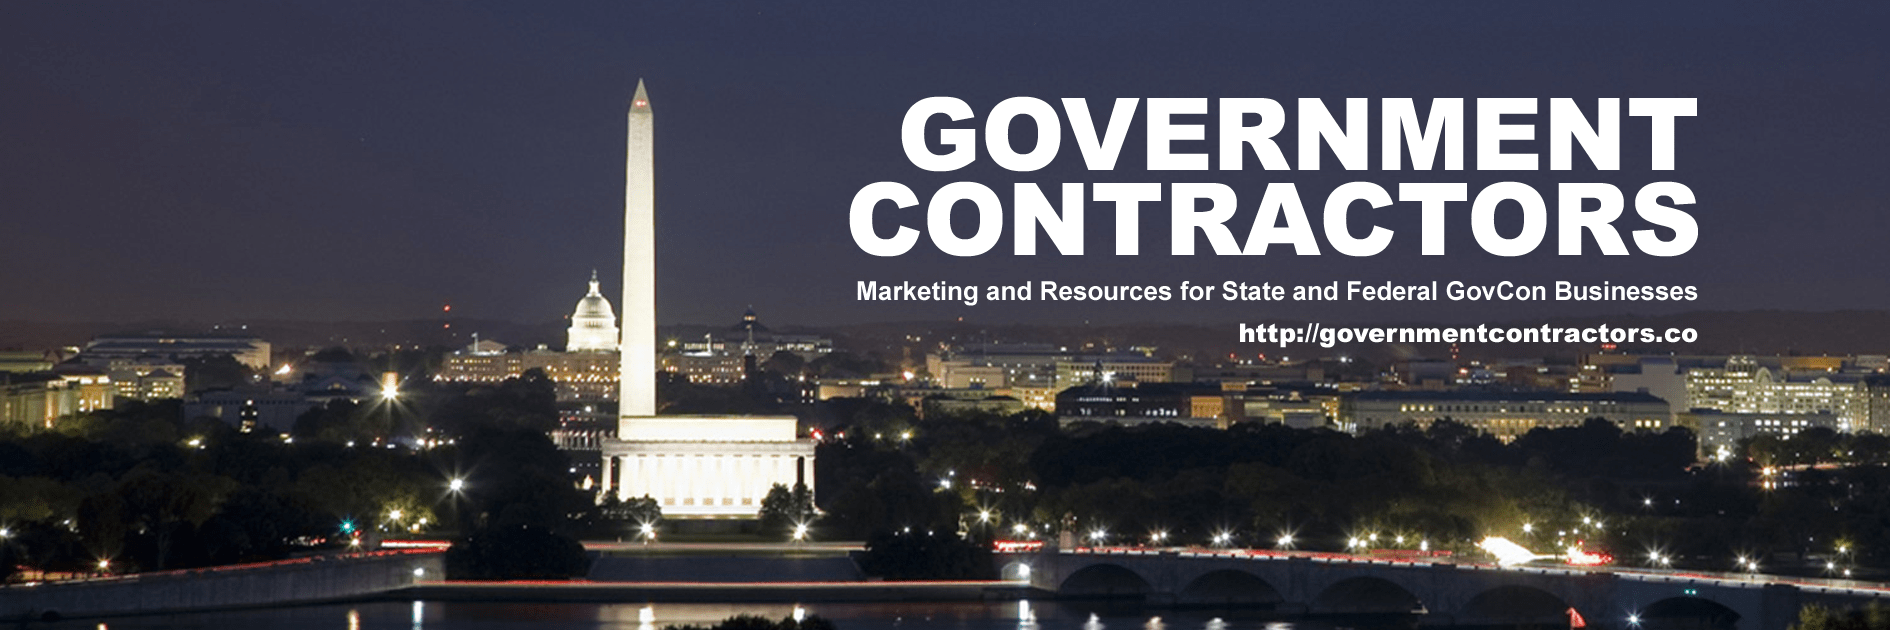 Government Contractors - B2G Website - Social Web Tactics